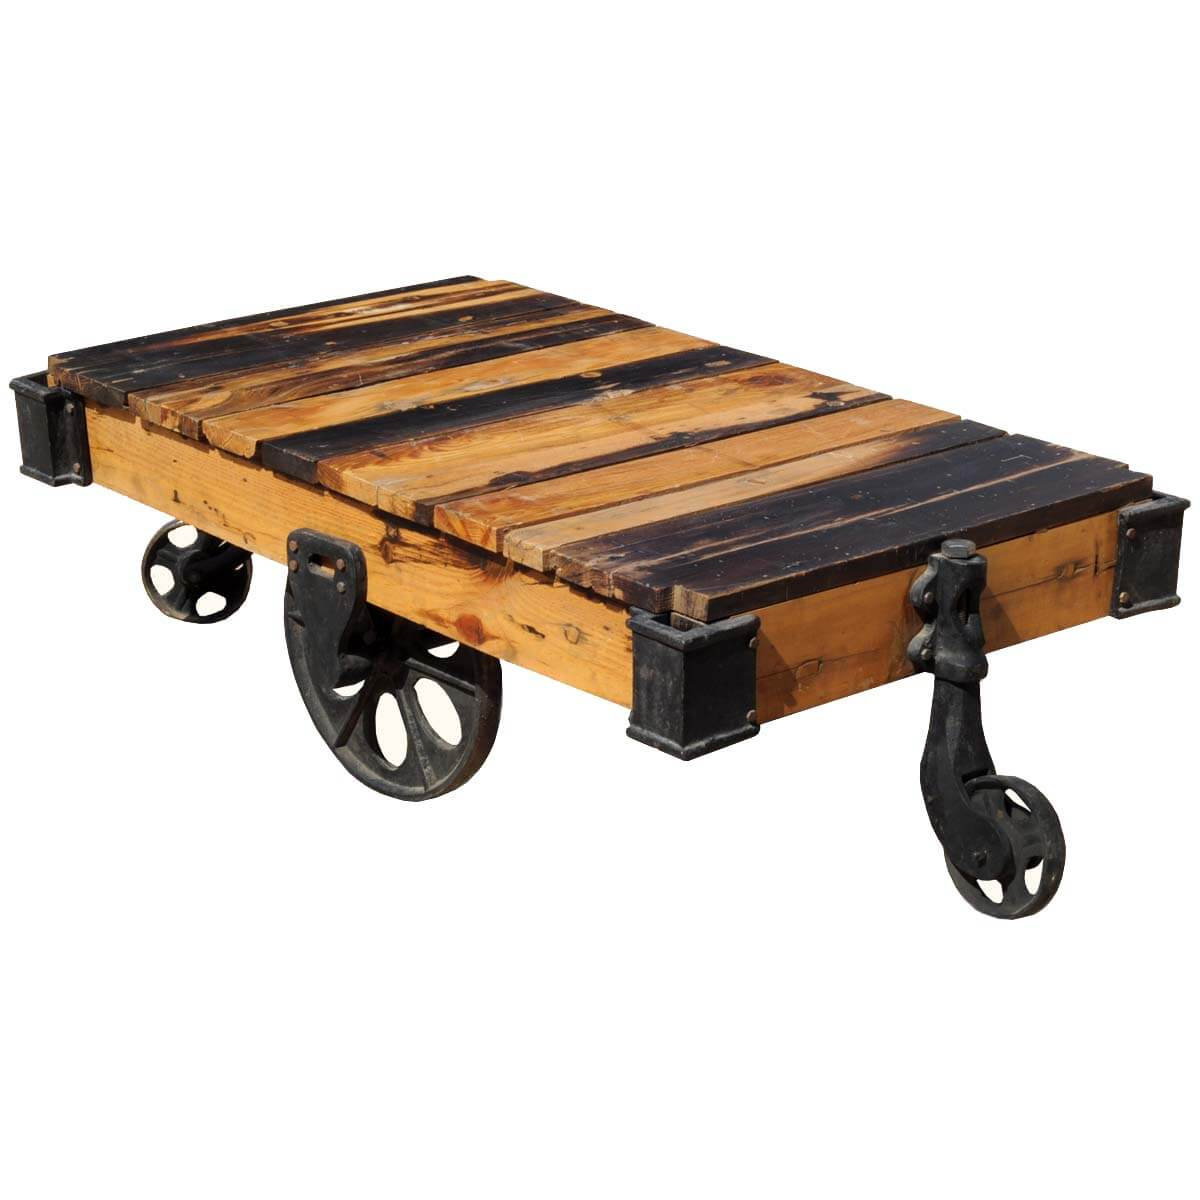 Rustic Reclaimed Wood Rolling Factory Cart Coffee Table